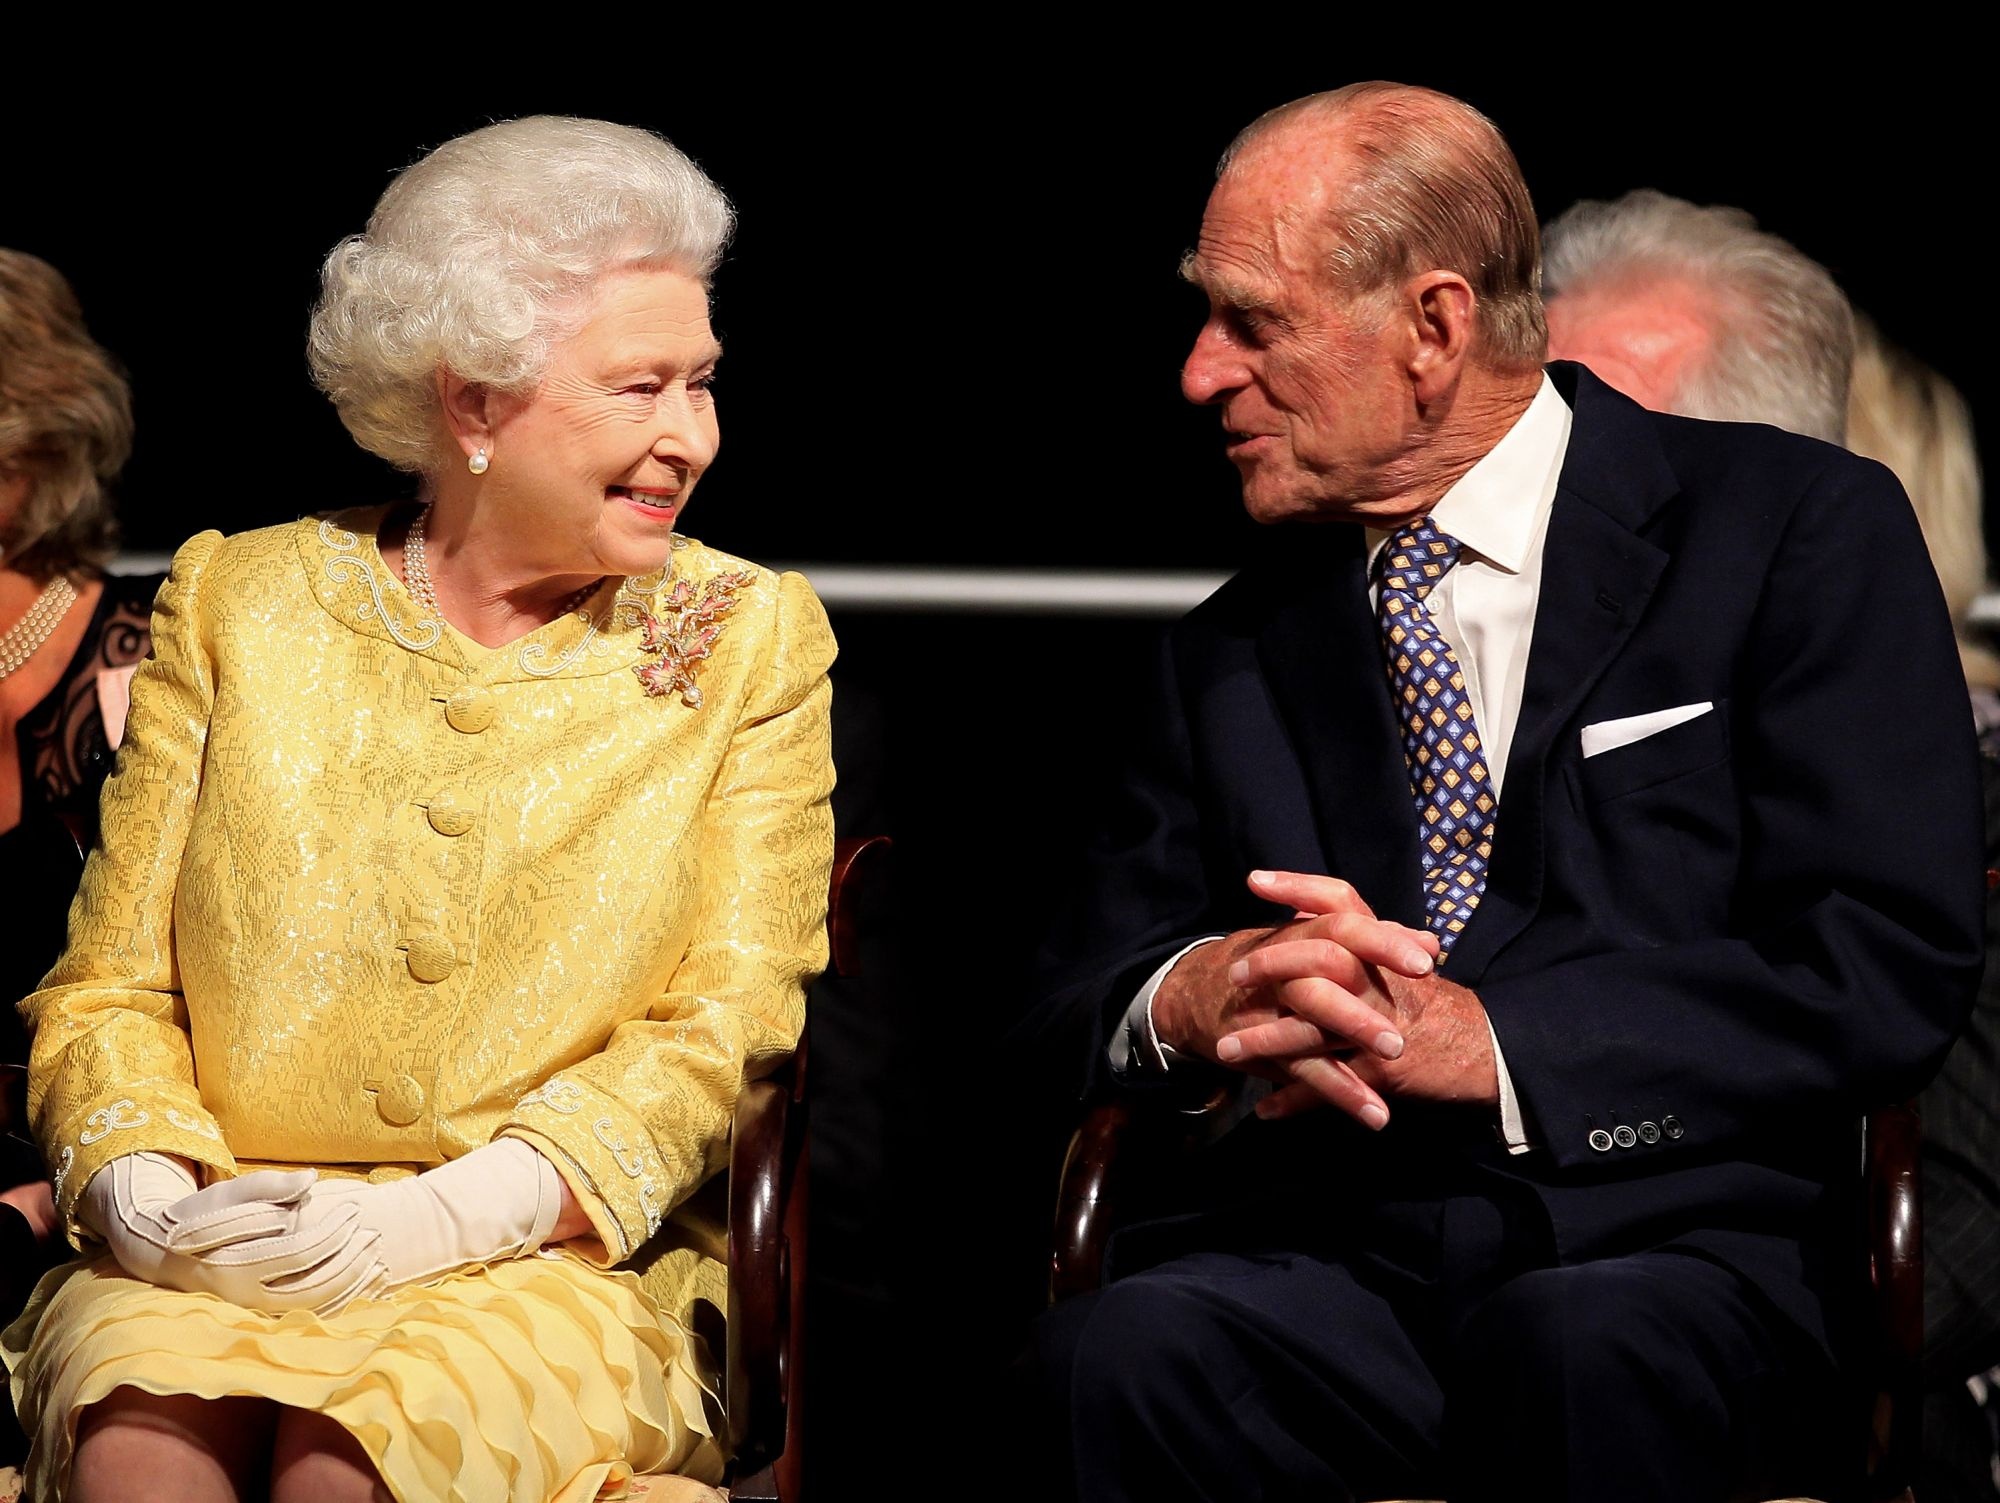 "HALIFAX, NS - JUNE 29:  Queen Elizabeth II and Prince Philip, Duke of Edinburgh attend a reception for ""A Celebration of Novia Scotia"" at the Cunard Centre on June 29, 2010 in Halifax, Canada. The Queen and Duke of Edinburgh are on an eight day tour of Canada starting in Halifax and finishing in Toronto. The trip is to celebrate the centenary of the Canadian Navy and to mark Canada Day. On July 6th, the royal couple will make their way to New York where the Queen will address the UN and visit Ground Zero."